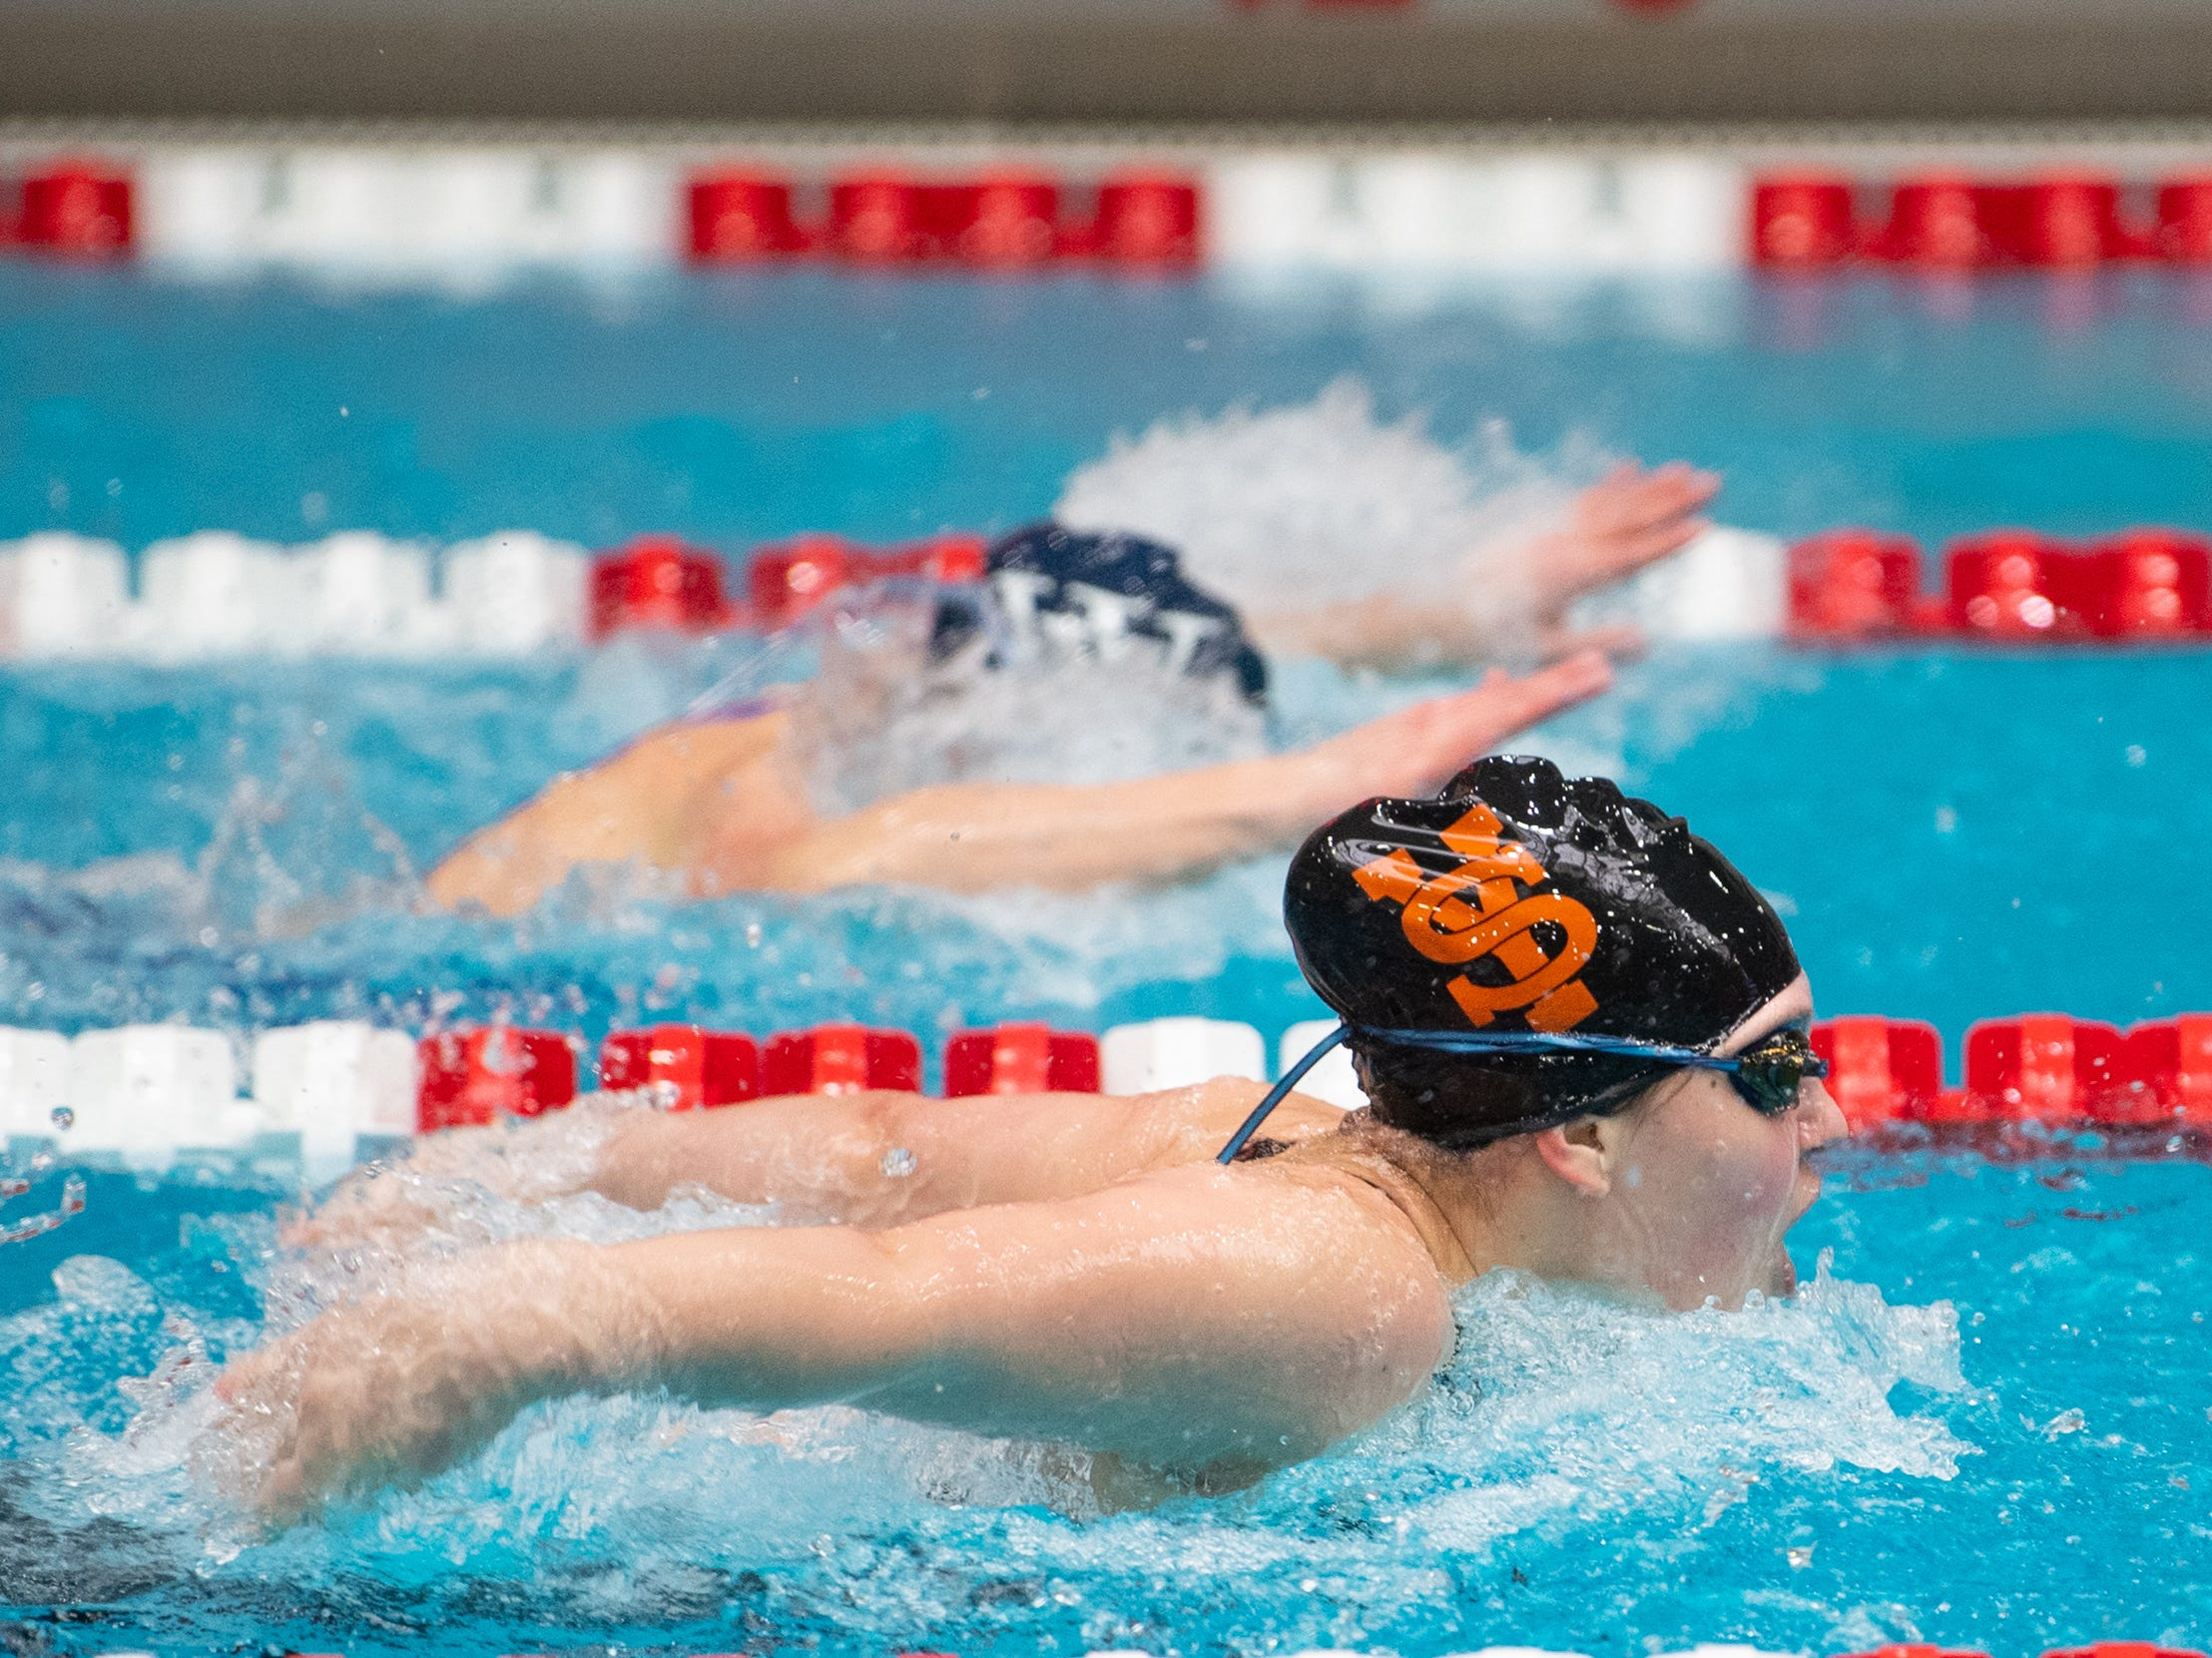 York Suburban's Mattie Quinn looks to pull ahead during the Girls 100 Yard Butterfly in the PIAA District 3 Girls AA Championship, March 1, 2019 at Cumberland Valley High School.